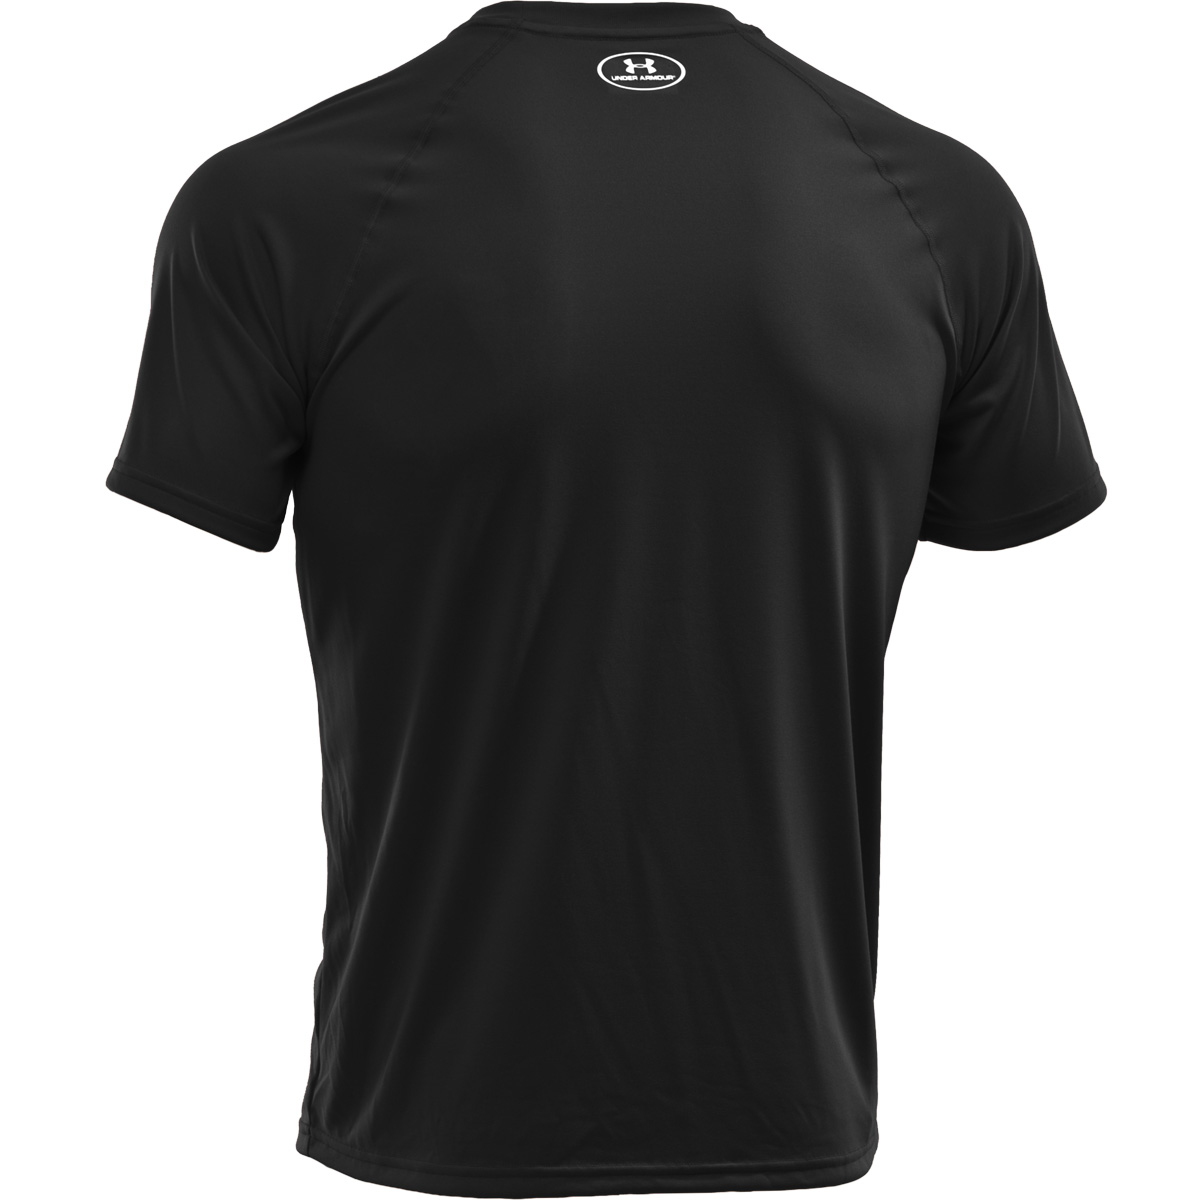 Under-Armour-Mens-UA-Tech-SS-T-Shirt-HeatGear-Training-31-OFF-RRP thumbnail 12